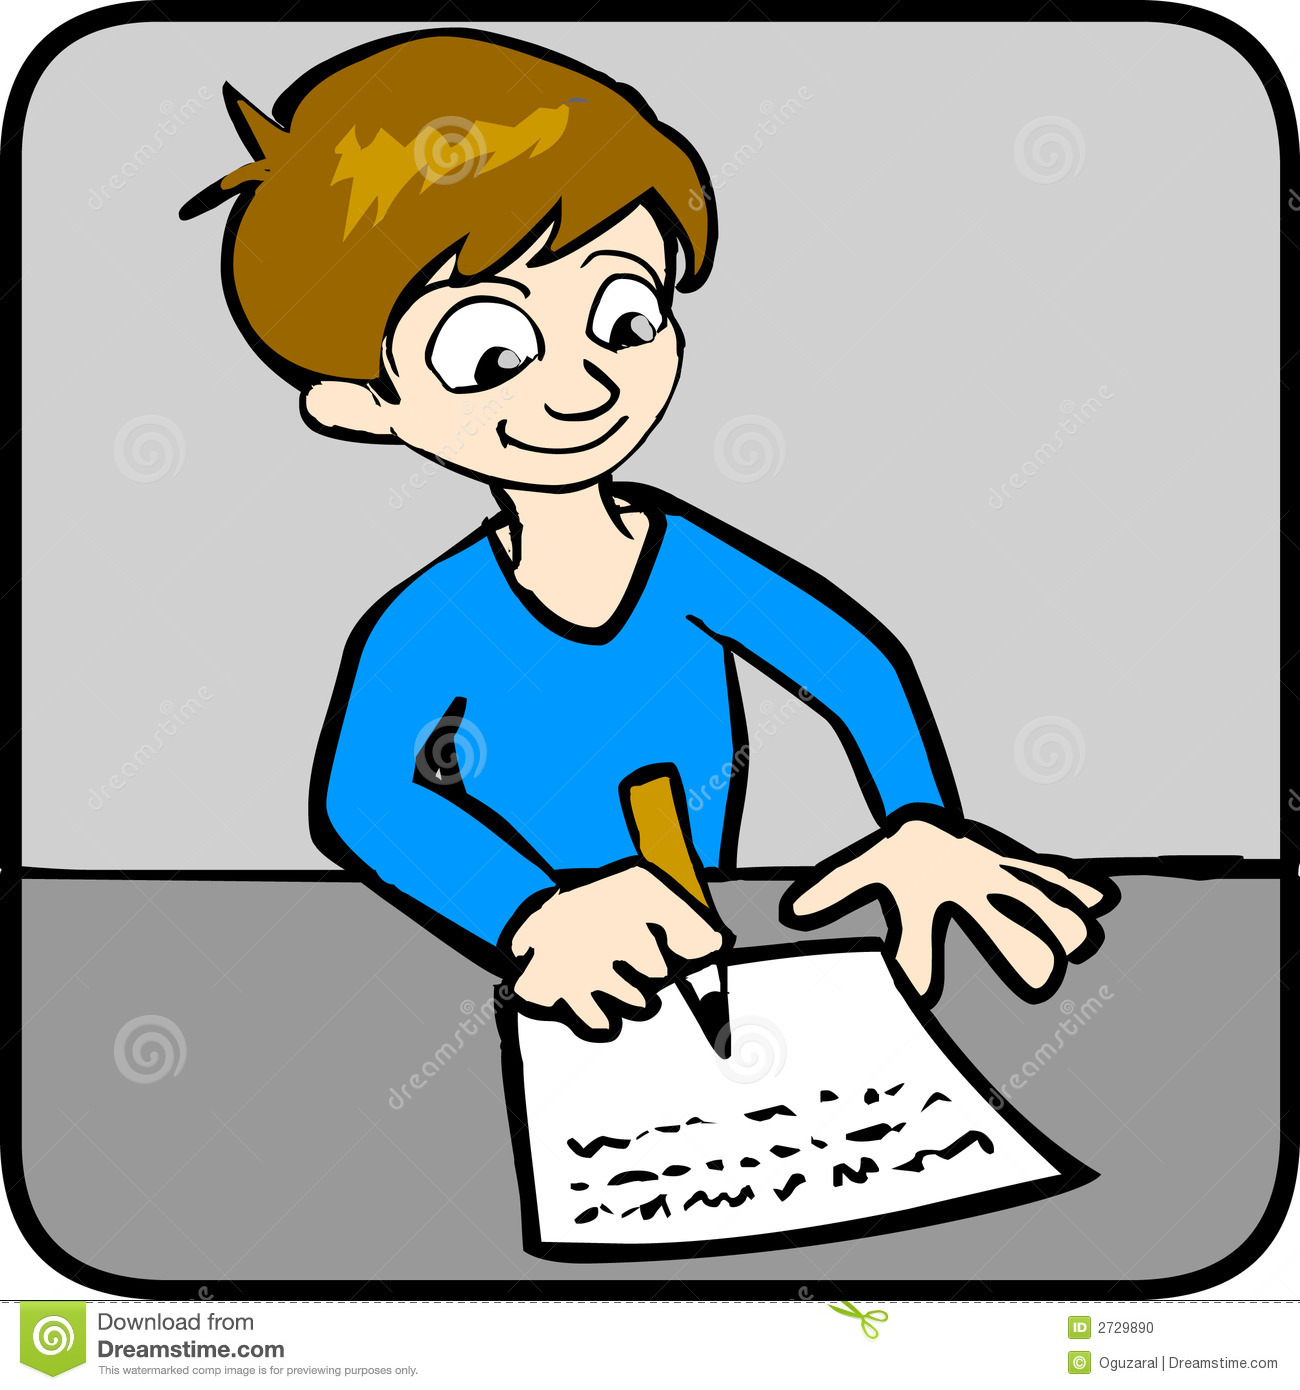 Boy turning in assignment clipart png free stock Boy turning in assignment clipart - ClipartFest png free stock